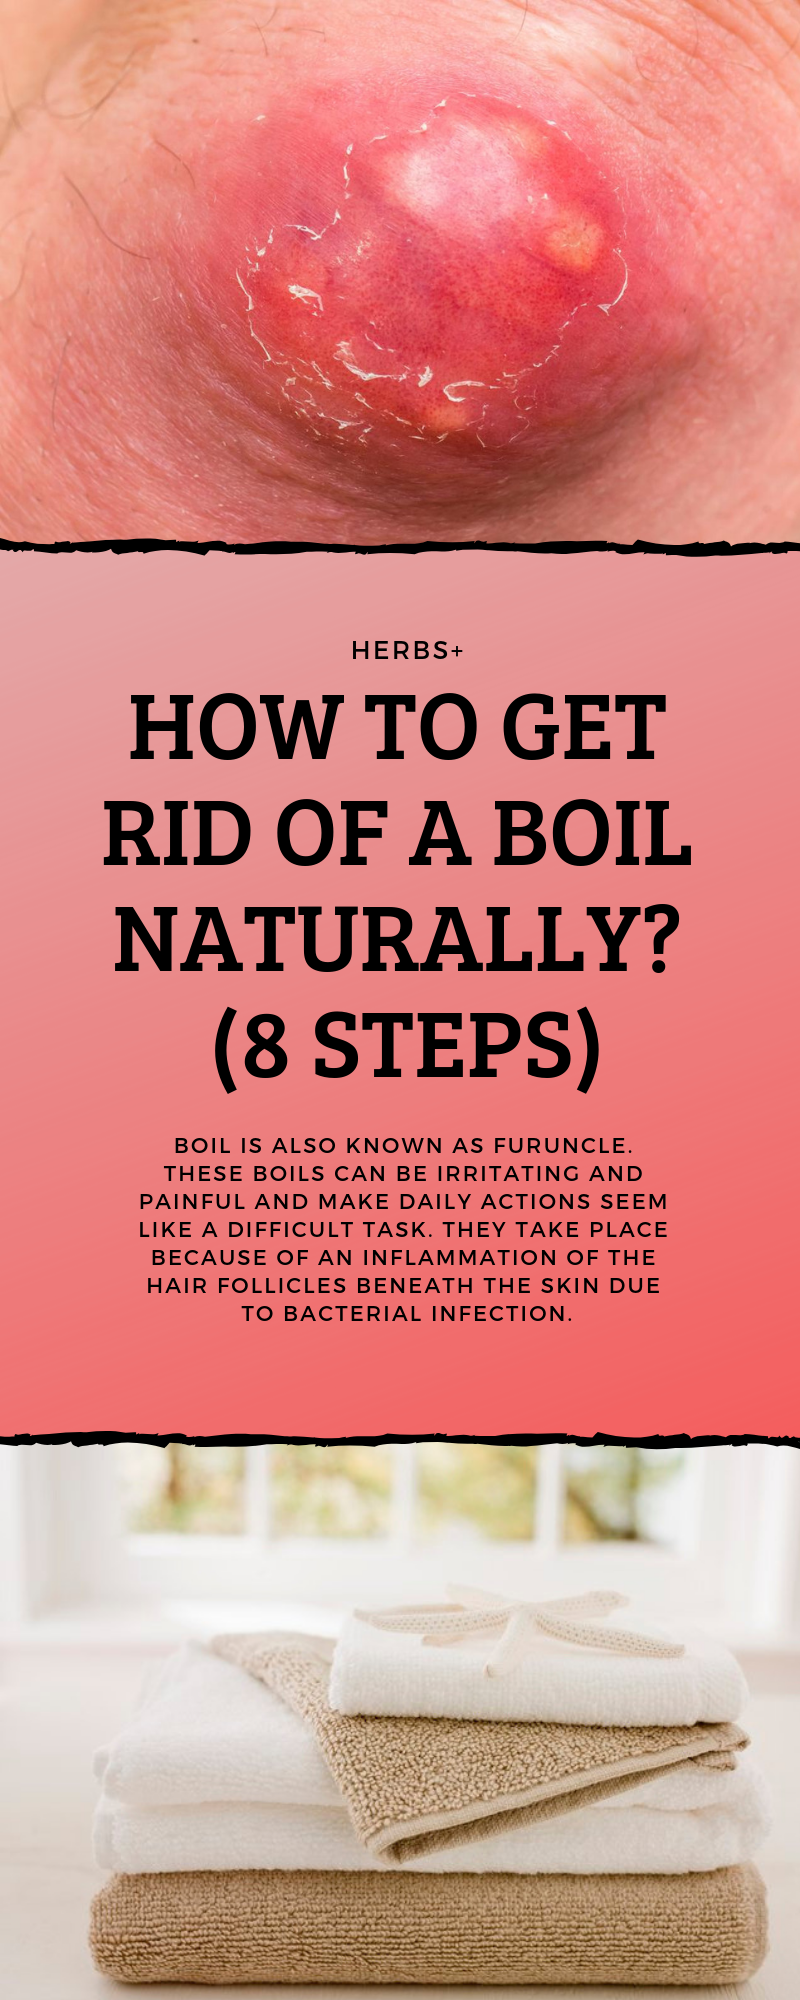 40a08d64667ceeaab33d3b82f68d0f1b - How To Get Rid Of A Boil On Your Lip